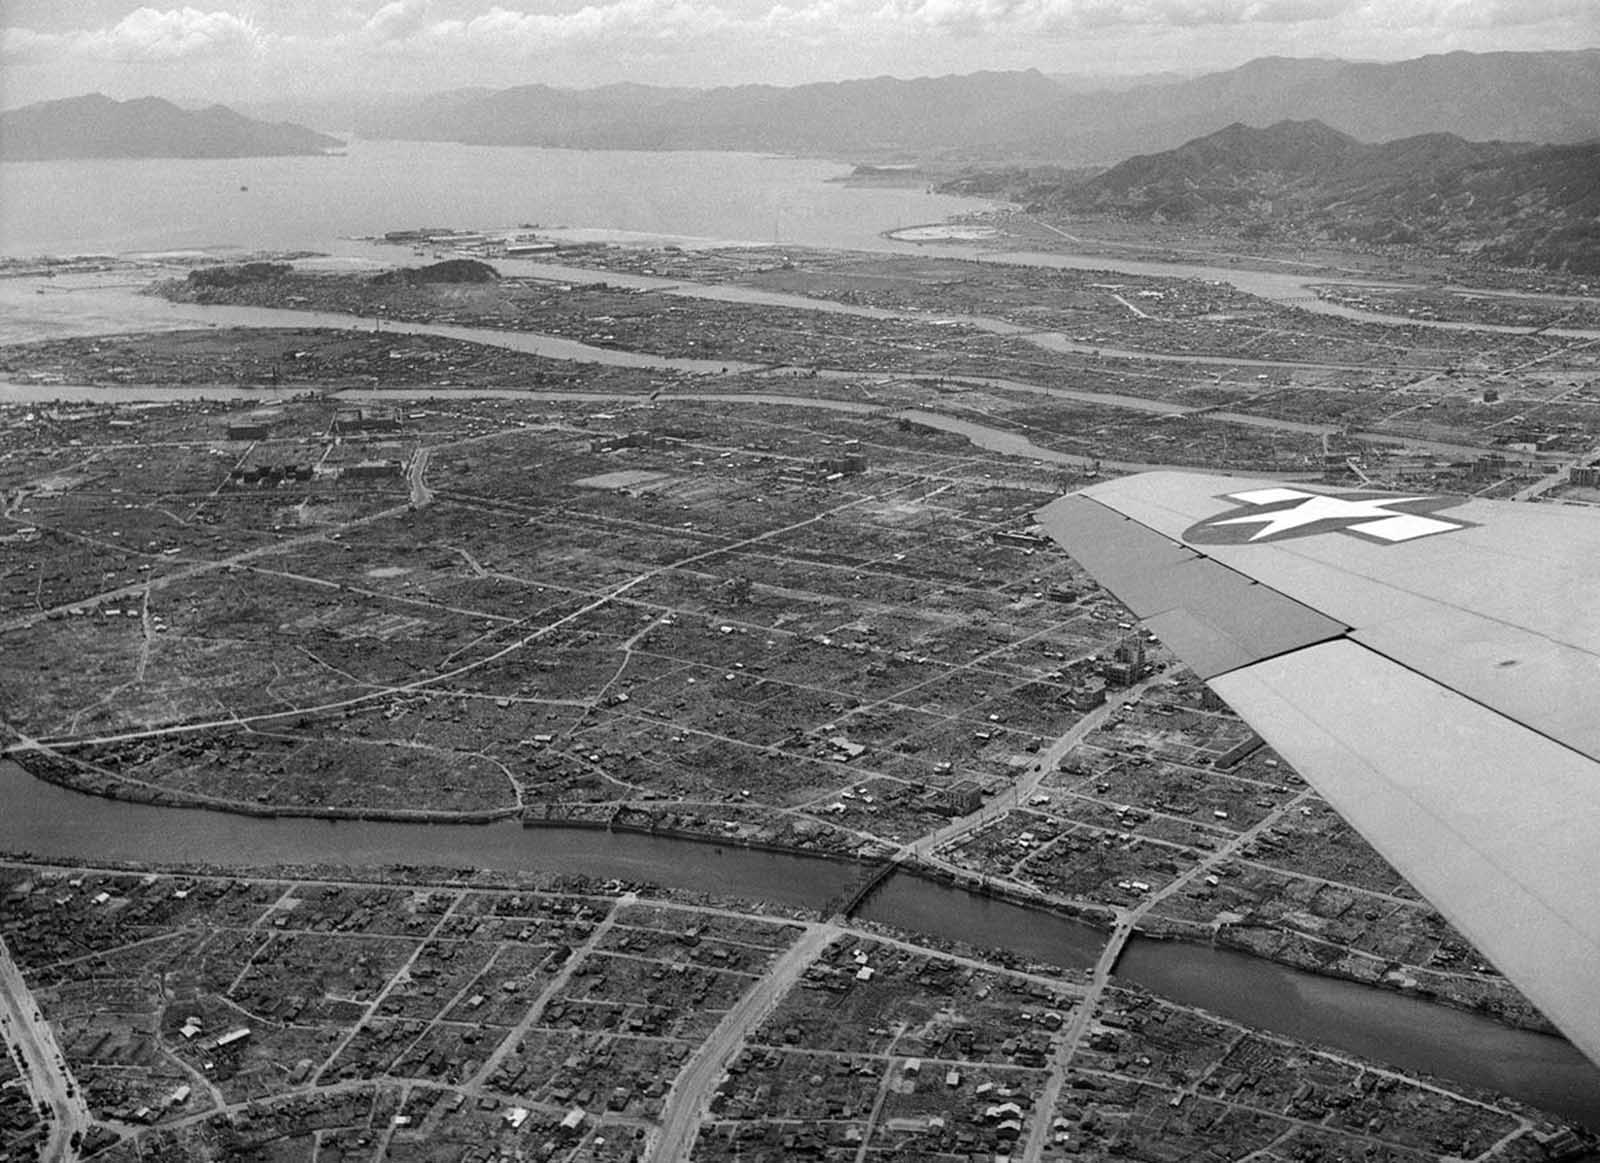 Aerial view of Hiroshima, Japan, one year after the atomic bomb blast shows some small amount of reconstruction amid much ruin on July 20, 1946. The slow pace of rebuilding is attributed to a shortage of building equipment and materials.